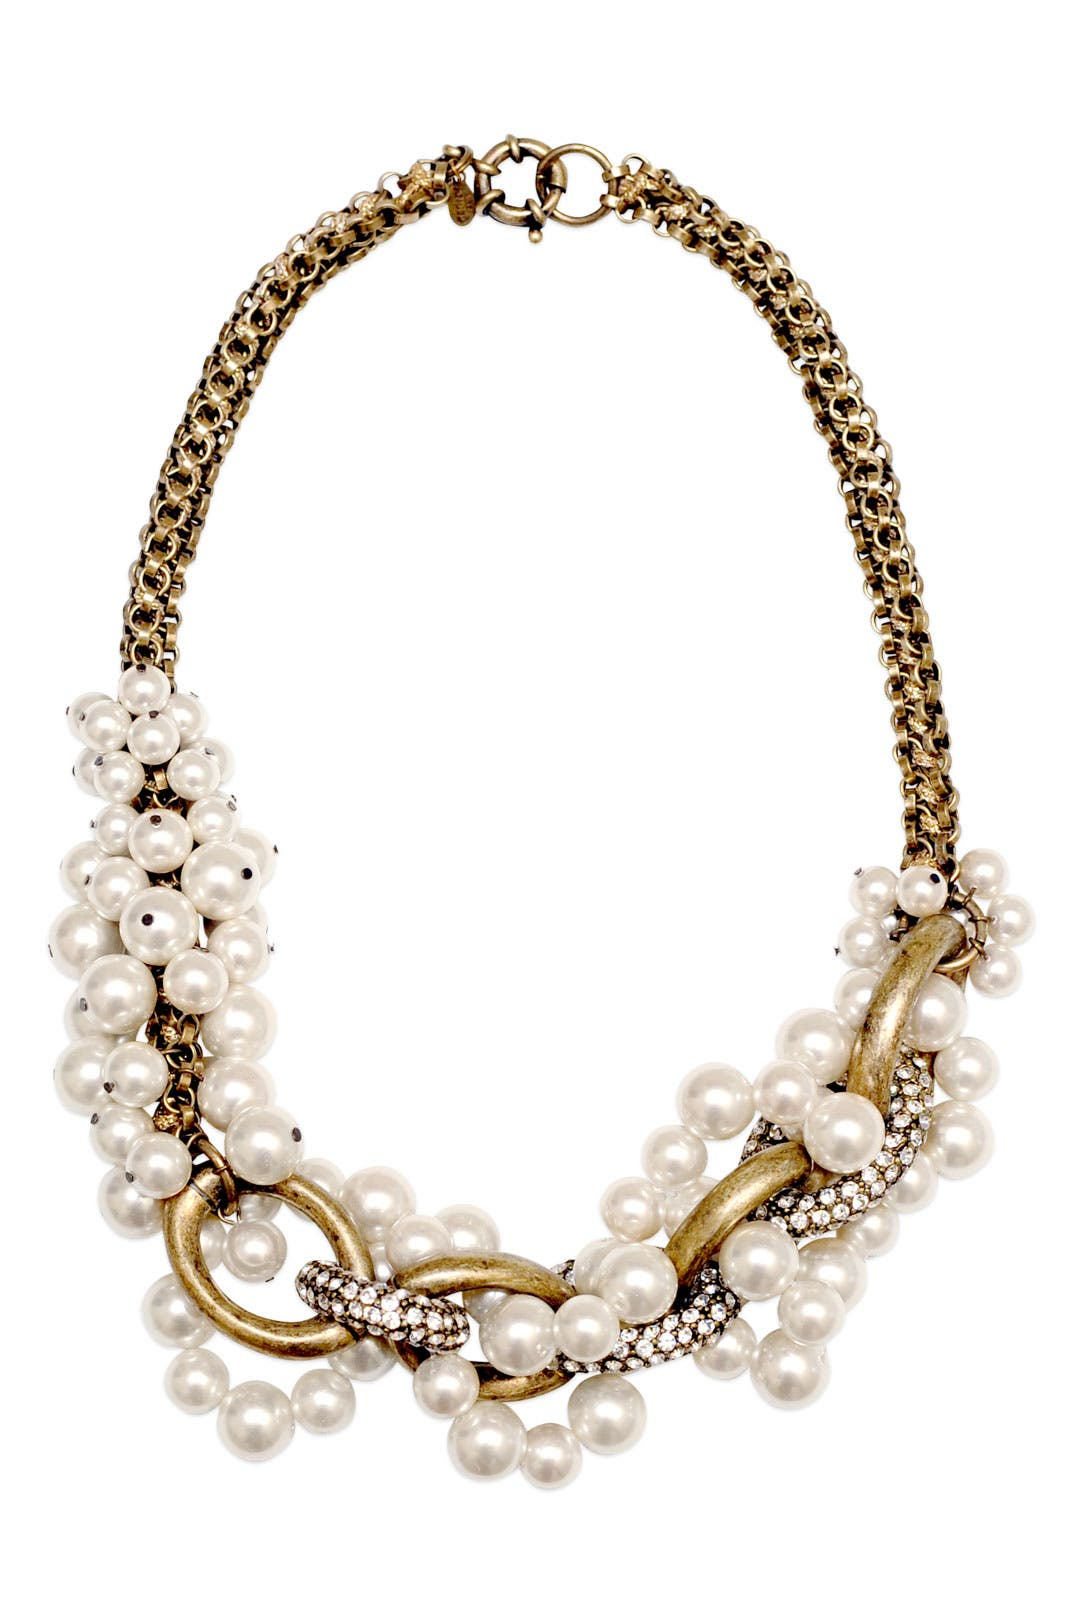 Entwined Pearl and Chain Necklace by Lee Angel